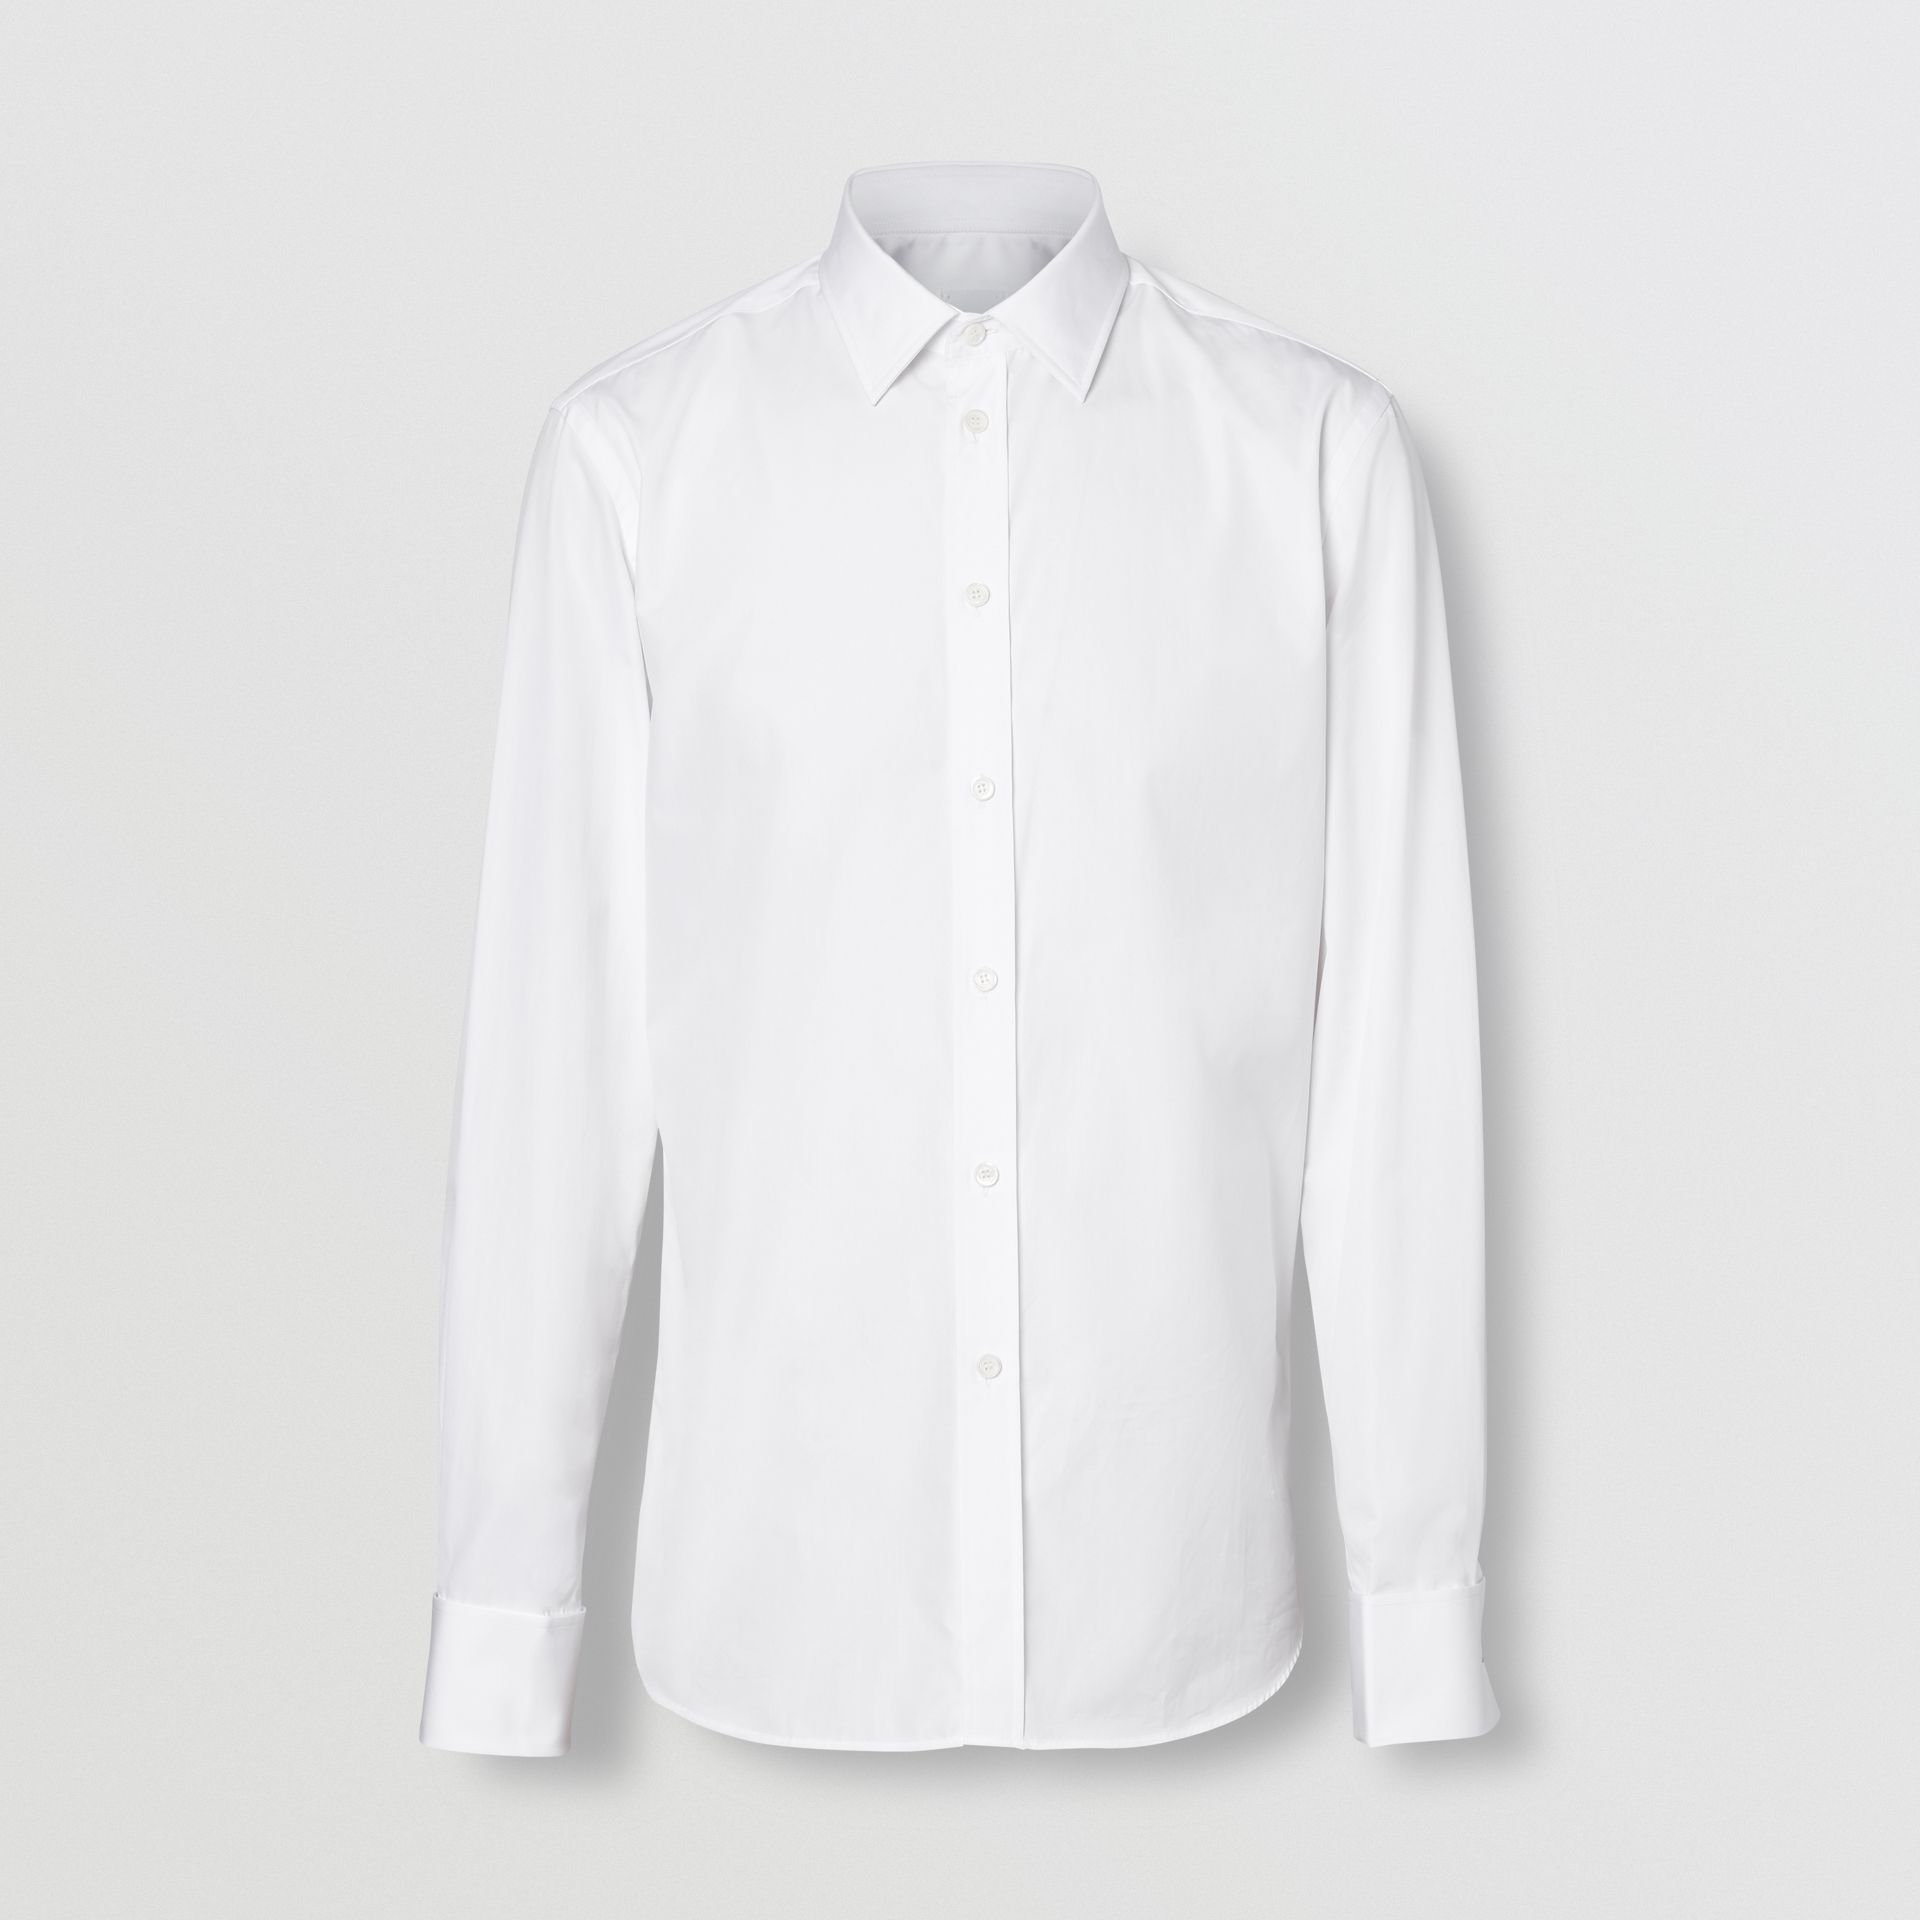 Slim Fit Monogram Motif Cotton Poplin Shirt in White - Men | Burberry Australia - gallery image 3